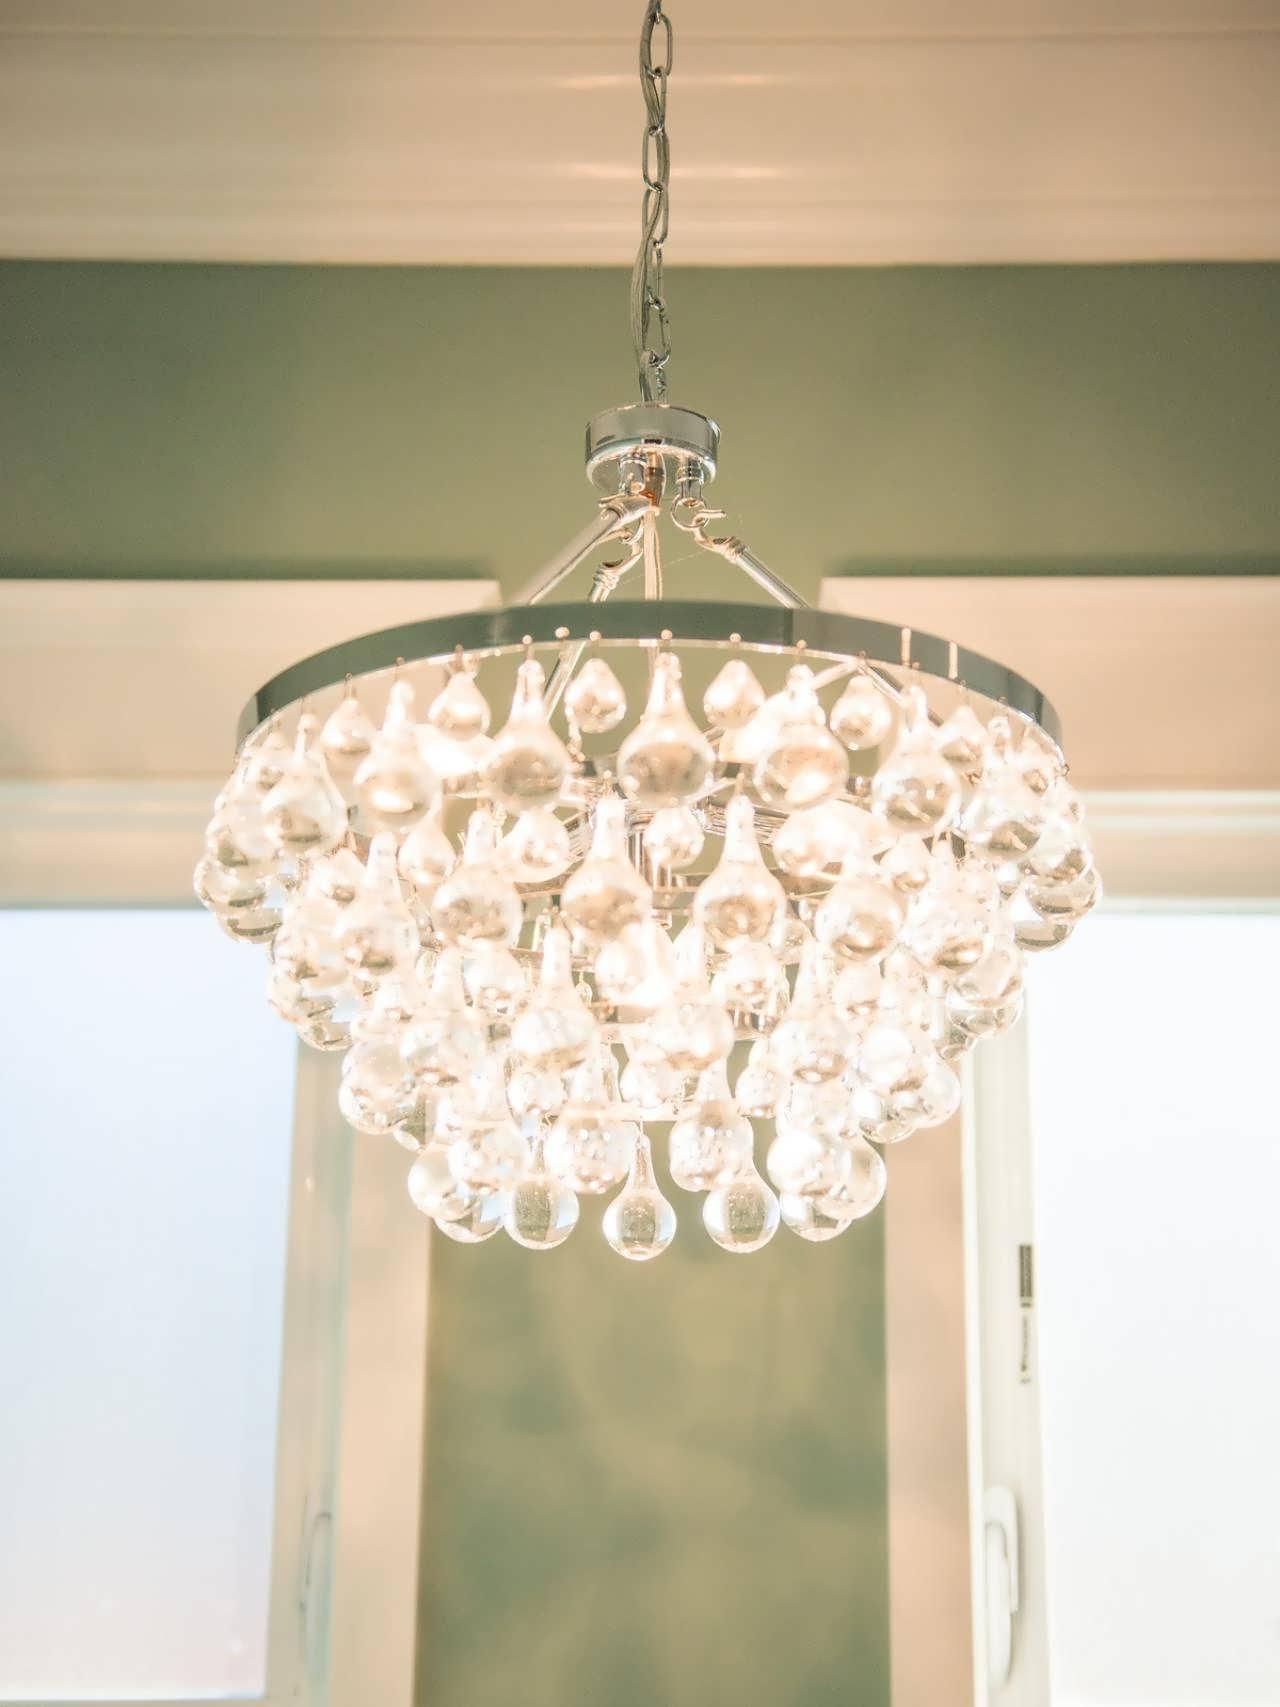 Shabby Chic Chandeliers Intended For Widely Used Chandeliers : Shabby Chic Chandeliers Elegant Chandeliers Design (View 14 of 15)